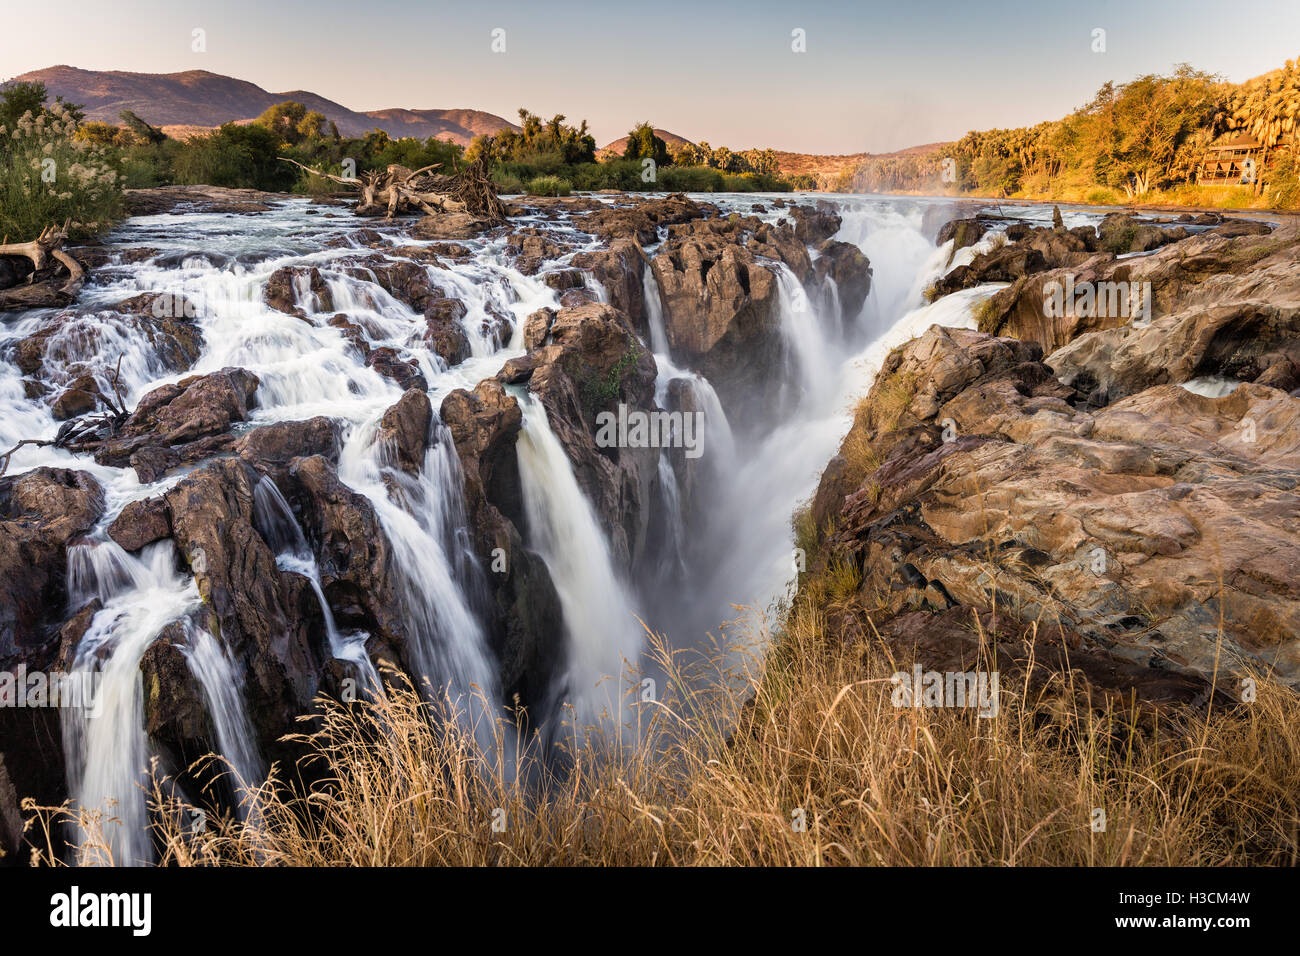 Multiple streams comprise the Epupa falls, on the Kunene river in the Kaokoveld of Northern Namibia, on the border - Stock Image